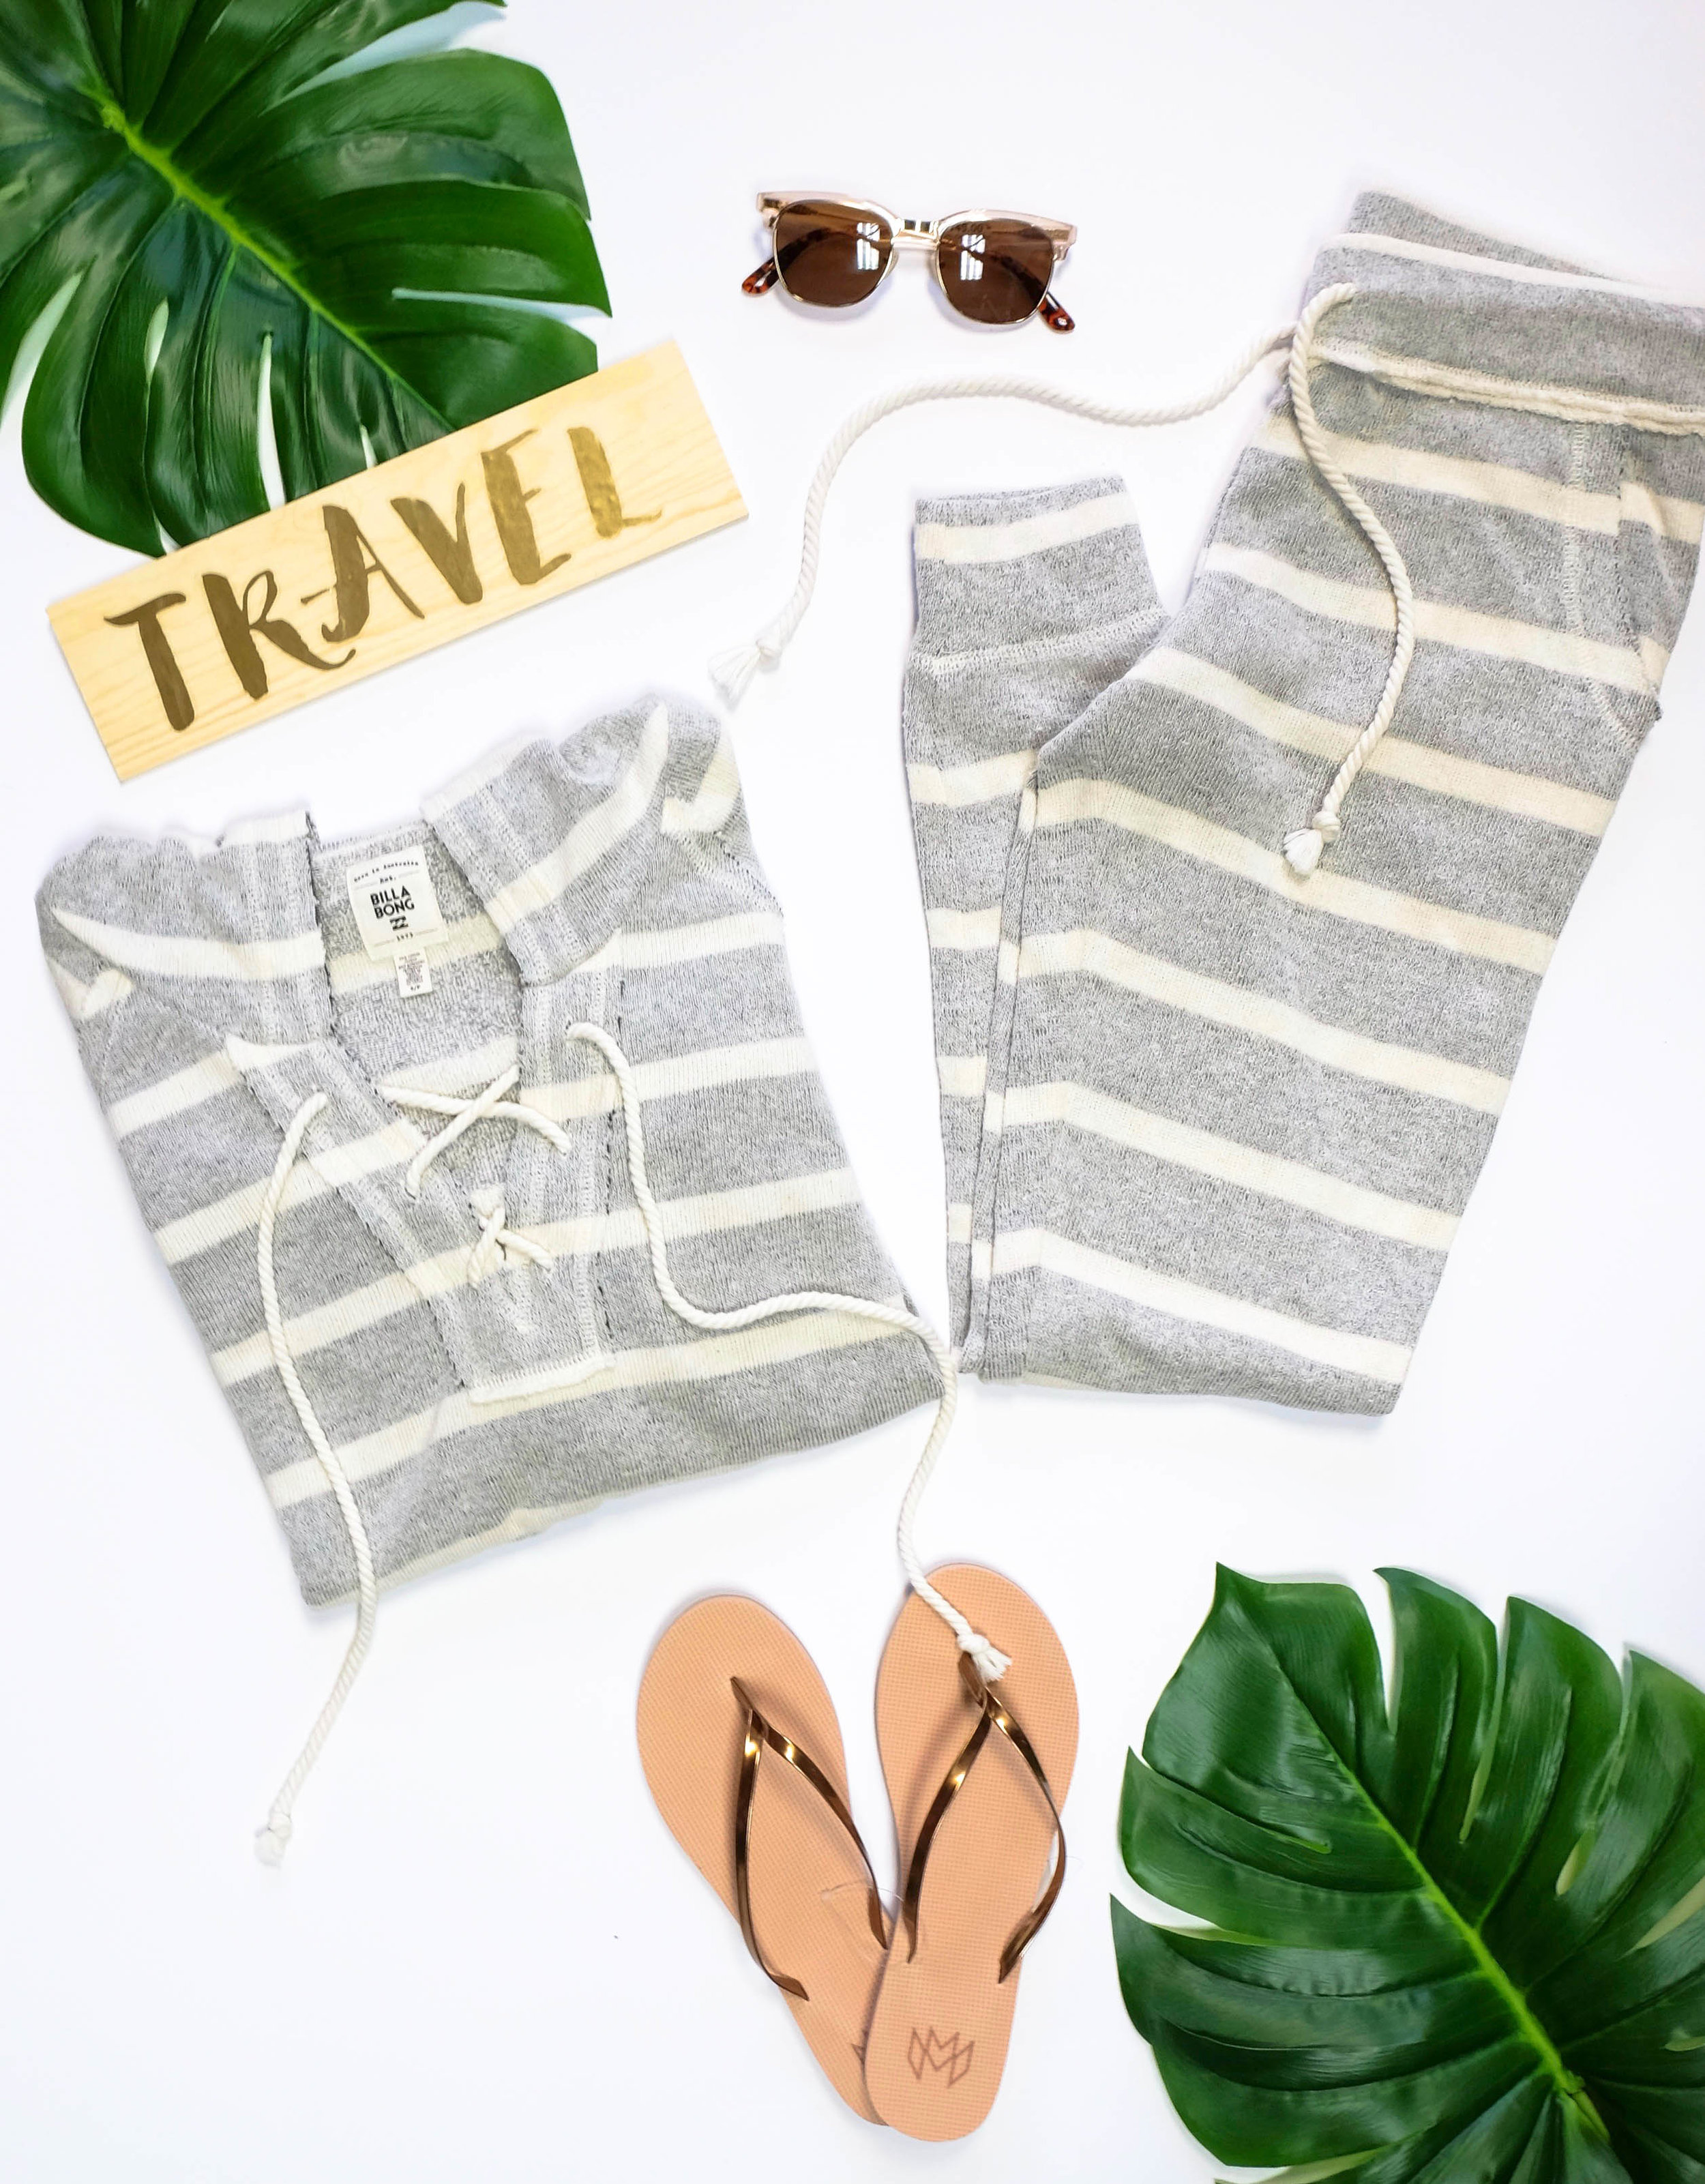 "For our ladies, a comfy day-of-travel outfit is necessary without looking like you just rolled out of bed for your 5 AM flight (even if you did!). Pairing your favorite sweatshirt and sweatpants doesn't always have to be your ""day off look"", especially with this cute Billabong set, an effortless way to look presentable. Now for shoes… I would personally wear some easy sandals to slip on and off because who wants to spend any more extra time in airport security?! Plus, I like to take my kicks off on the plane and can save myself the embarrassment of stinky shoes. (Quick Tip: Keep a pair of Stance socks in your carry on!) And don't worry, we added some Toms sunglasses to hide those bags under your eyes. ;)       Pictured:  Billabong Sweatshirt  Billabong Sweats  Toms Sunglasses  Malvados Flip-Flips        Now for the part I know everyone has been dreading since Thanksgiving.  Swimsuit Season . Trust me, the last thing I want to do is put a swimsuit on my terrifyingly white body too. But we have so many cute suits in store that its hard to not want to buy them! My current swimsuit obsession is this fun, printed Maaji two-piece. Also, they're swimwear is reversible so it's basically getting two swimsuits in one! Which means you won't have to pack as much and your suitcase will have more room for shoes :) Other than a swimsuit being a beach/pool day essential having a cute towel will make getting that sun burn a little cuter. You cant't go wrong with this Volcom 'Hypnotize' Round Towel, its even big enough for two (AKA another reason to pack more shoes)! Last but not least, don't forget to support your favorite local boutique and pick up a cute and functional Vanilla Mizu water bottle to keep your choice of beverage cold all day! Post a pic and tag us on Instagram of where you and your Vanilla bottle are vacationing to this Spring!"